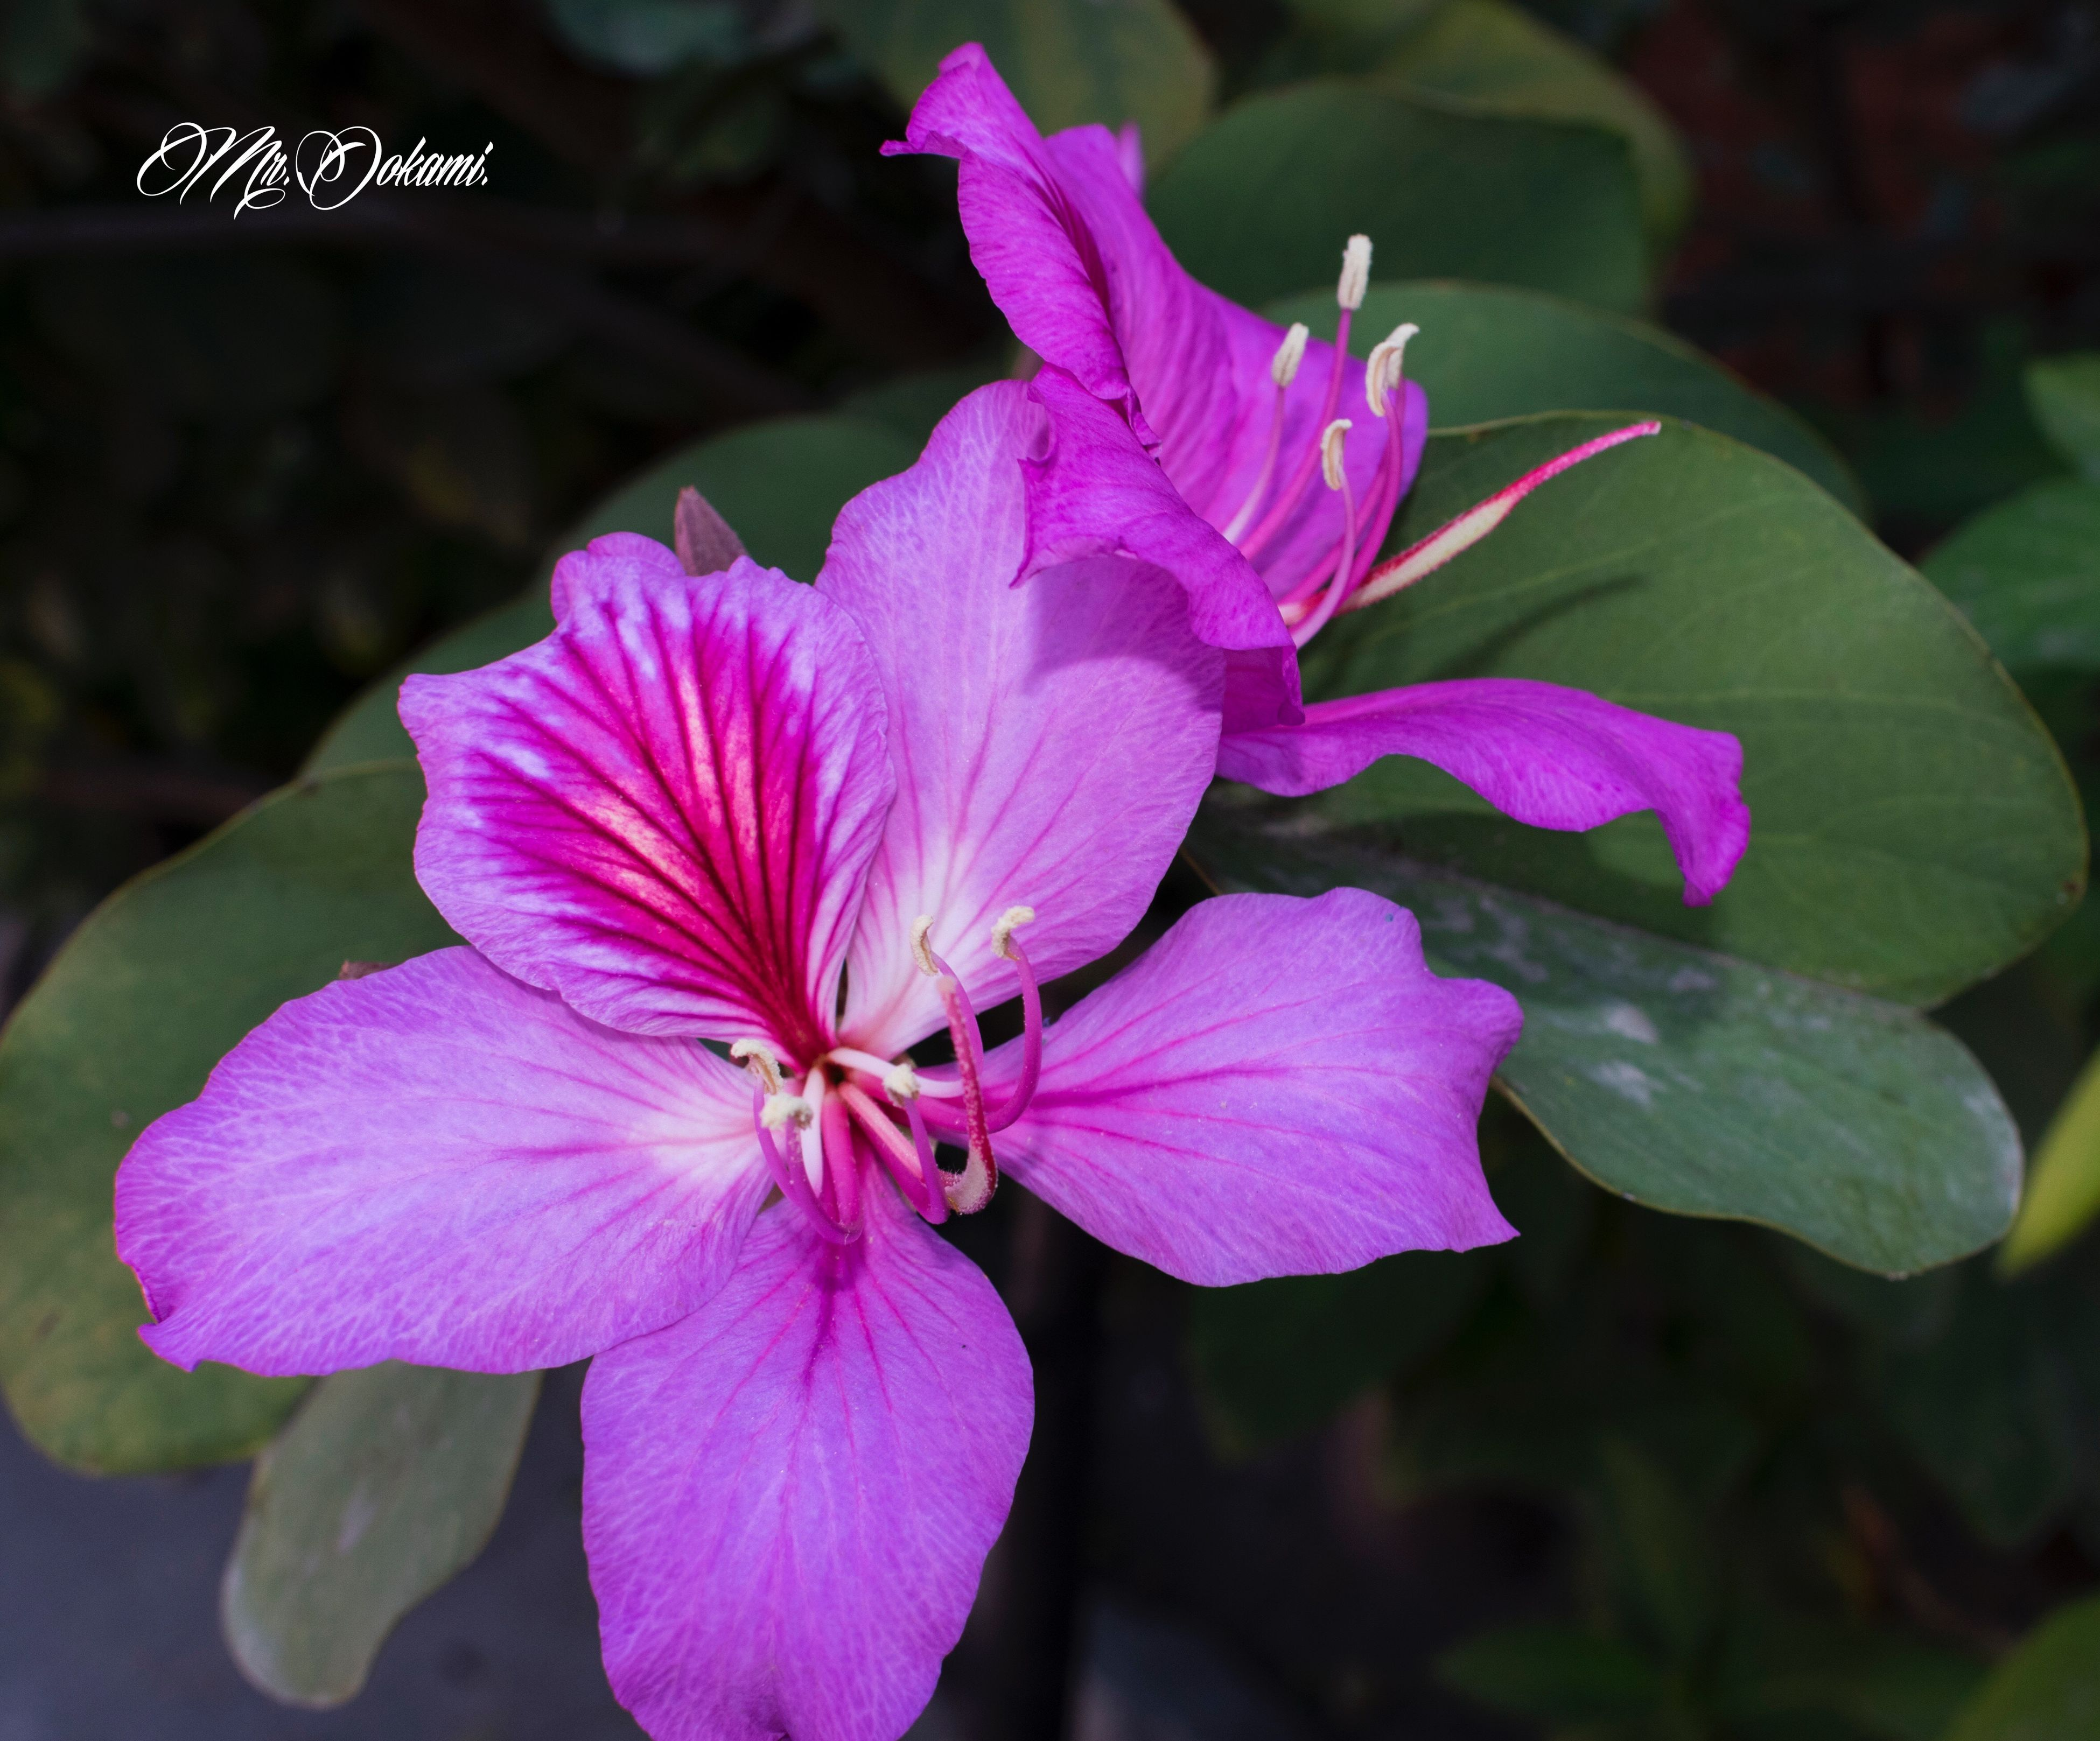 flower, beauty in nature, nature, freshness, fragility, petal, flower head, growth, pink color, close-up, focus on foreground, blooming, purple, plant, outdoors, no people, pollen, day, rhododendron, passion flower